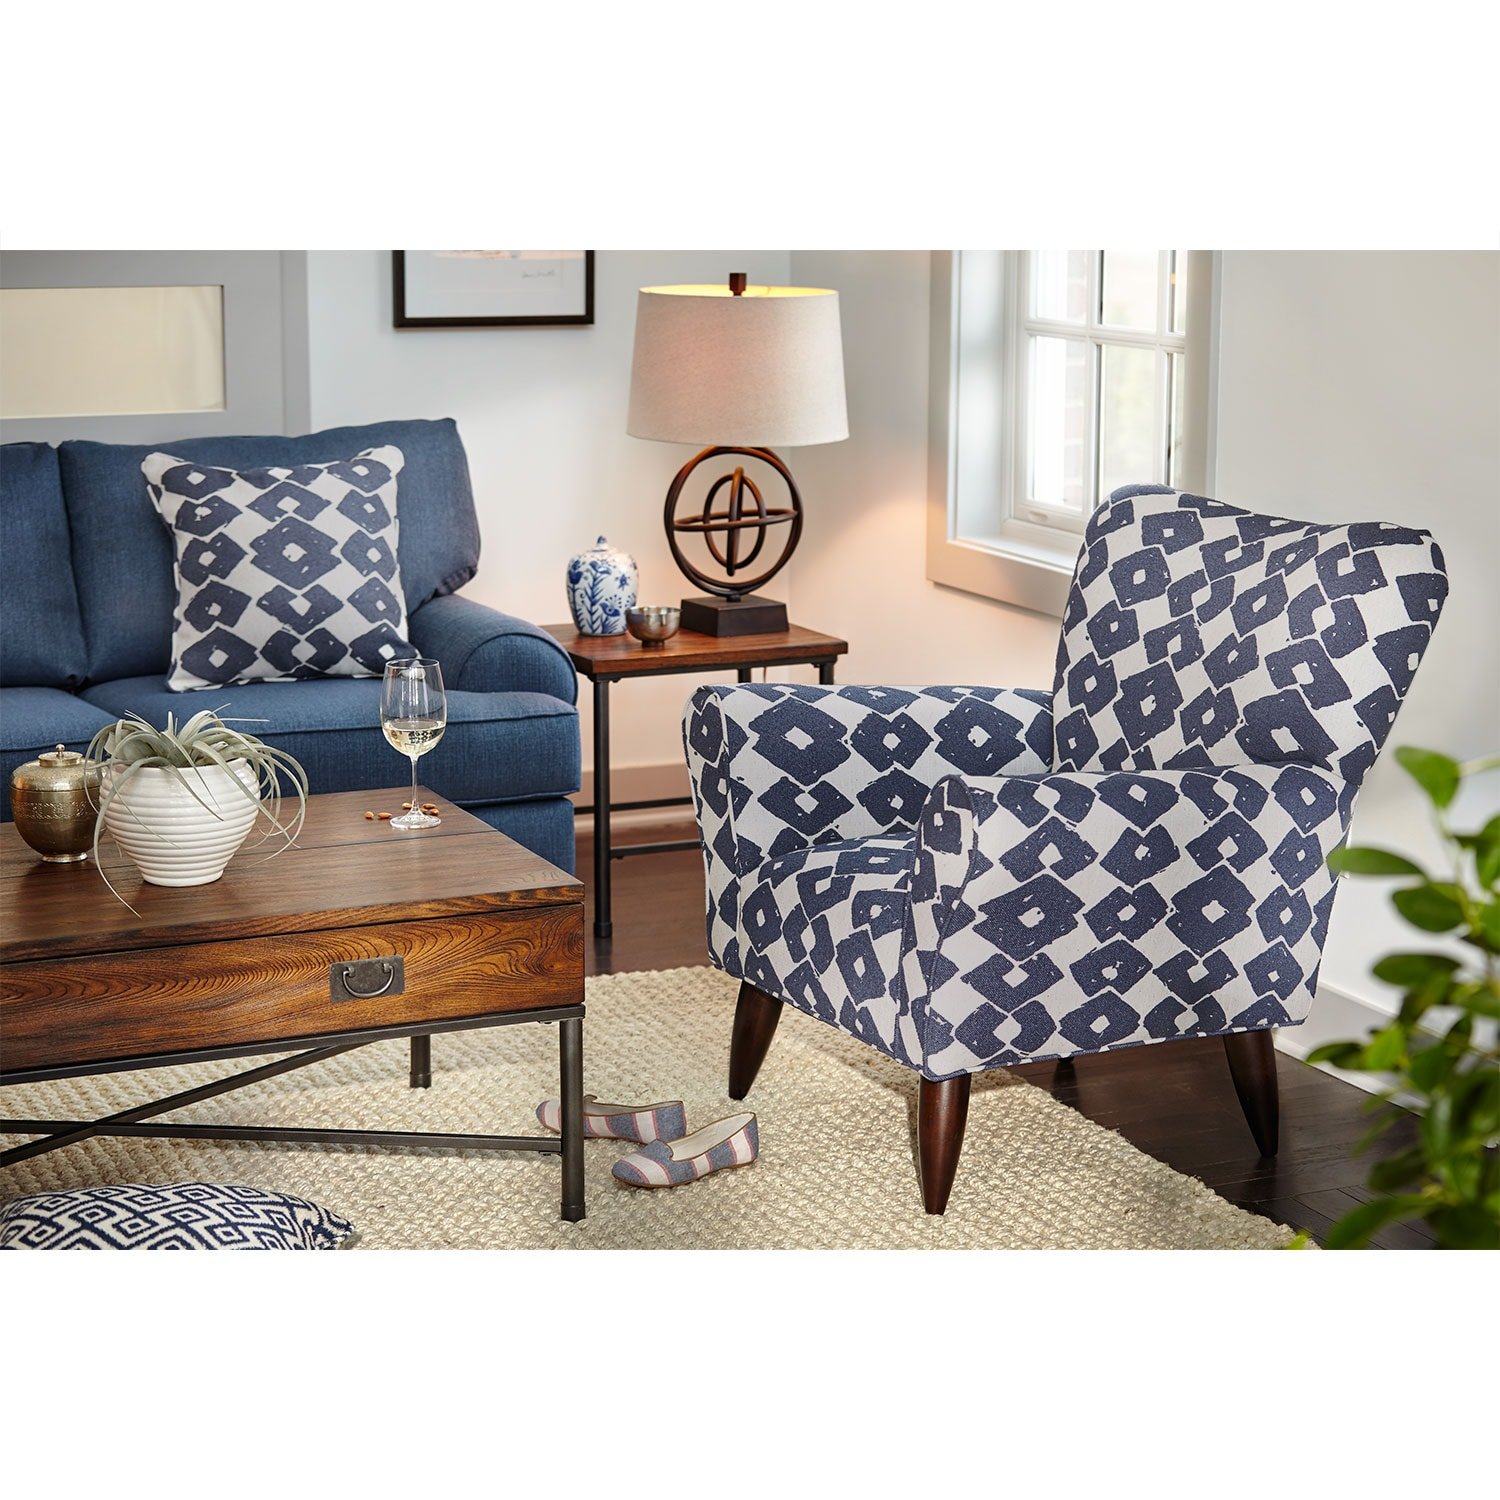 Blue Accent Chairs For Living Room Home Design Ideas and